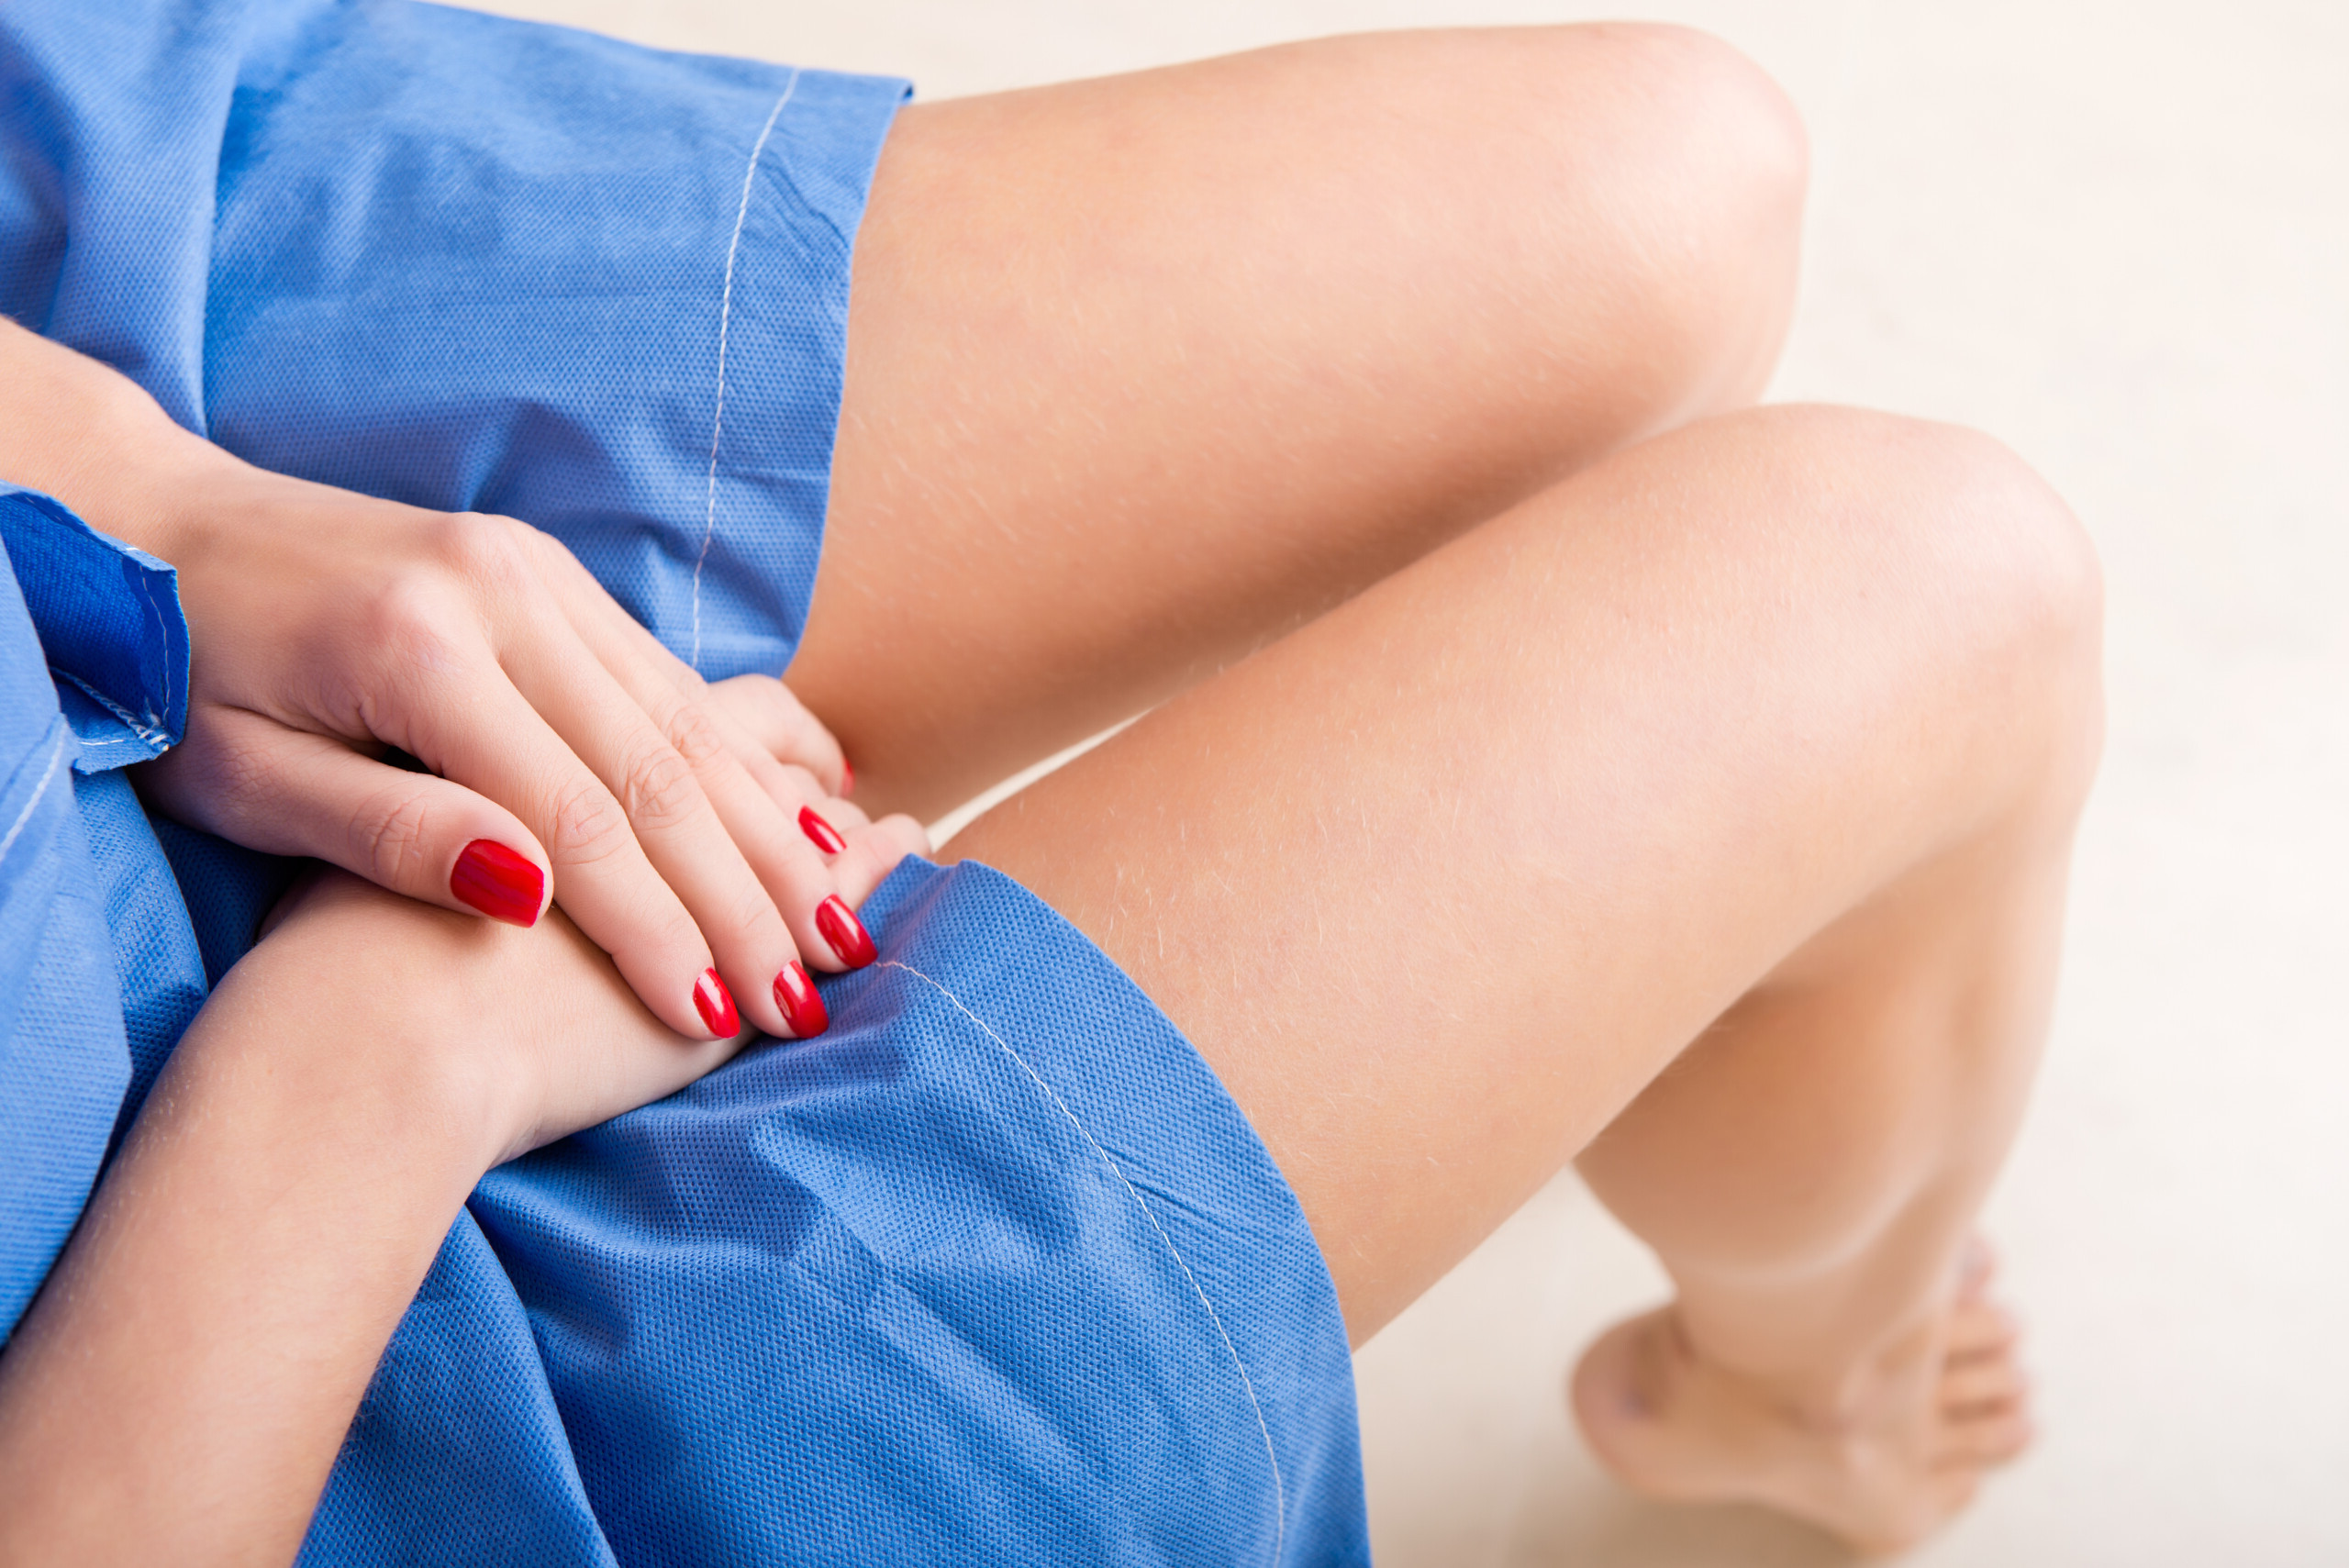 Can an Ovarian Cyst Cause Blood in the Urine?